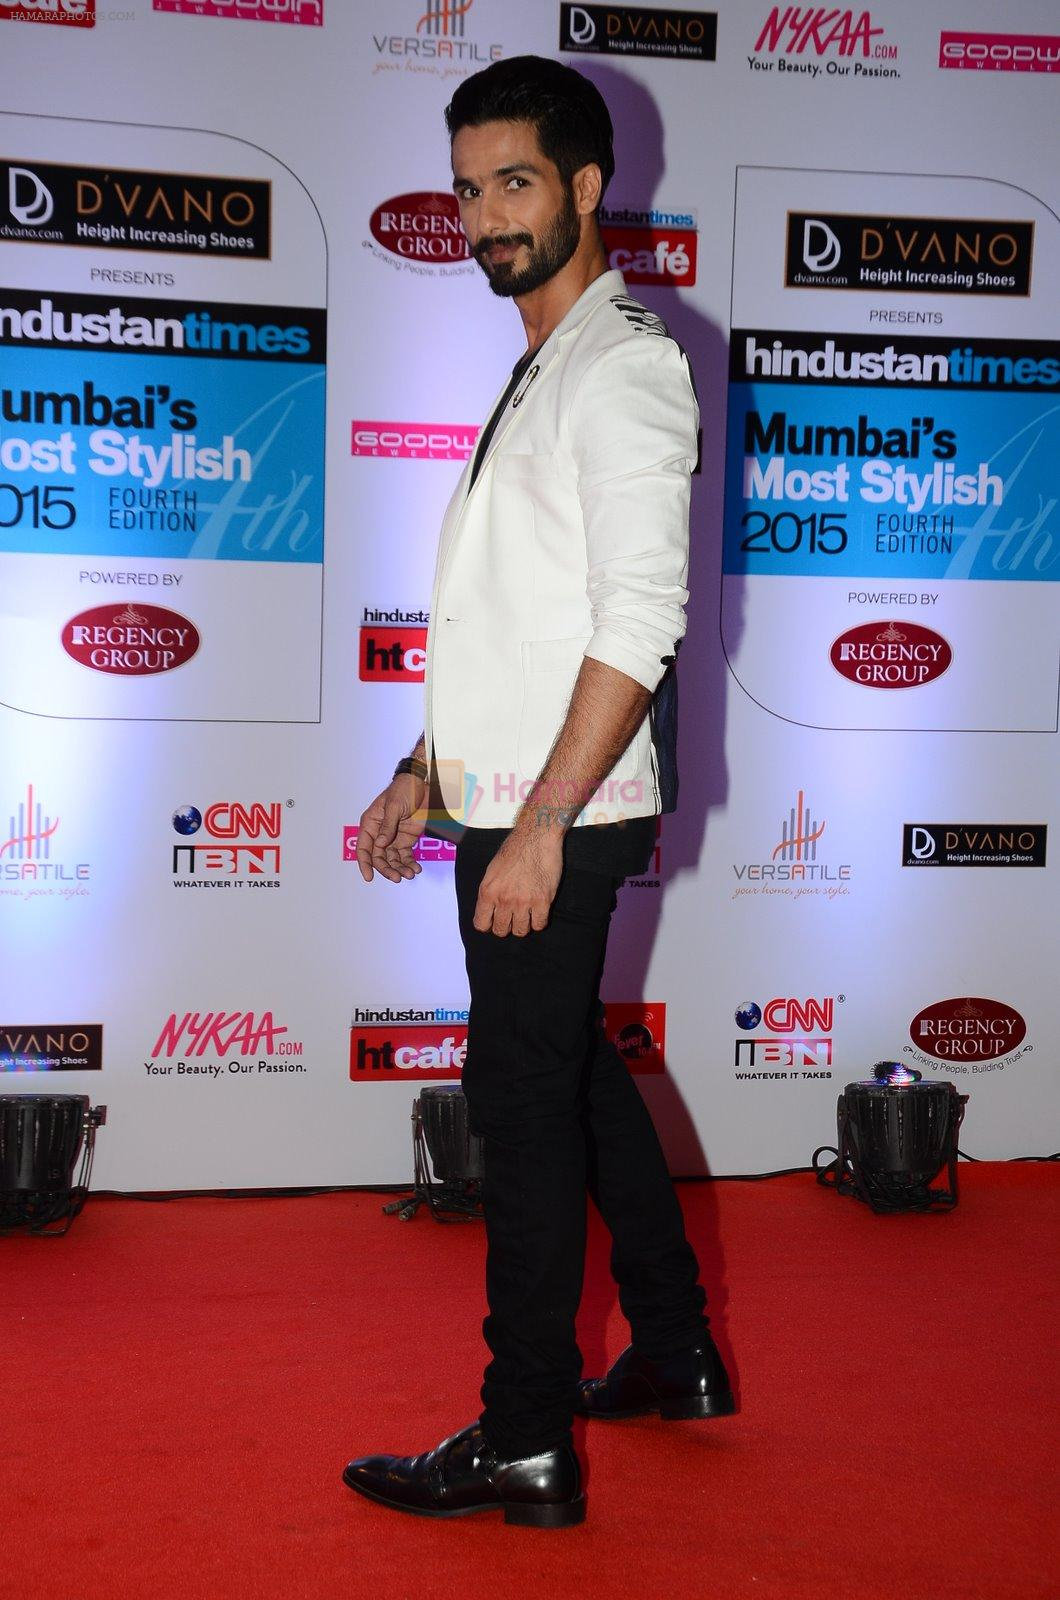 Shahid Kapoor at HT Mumbai's Most Stylish Awards 2015 in Mumbai on 26th March 2015